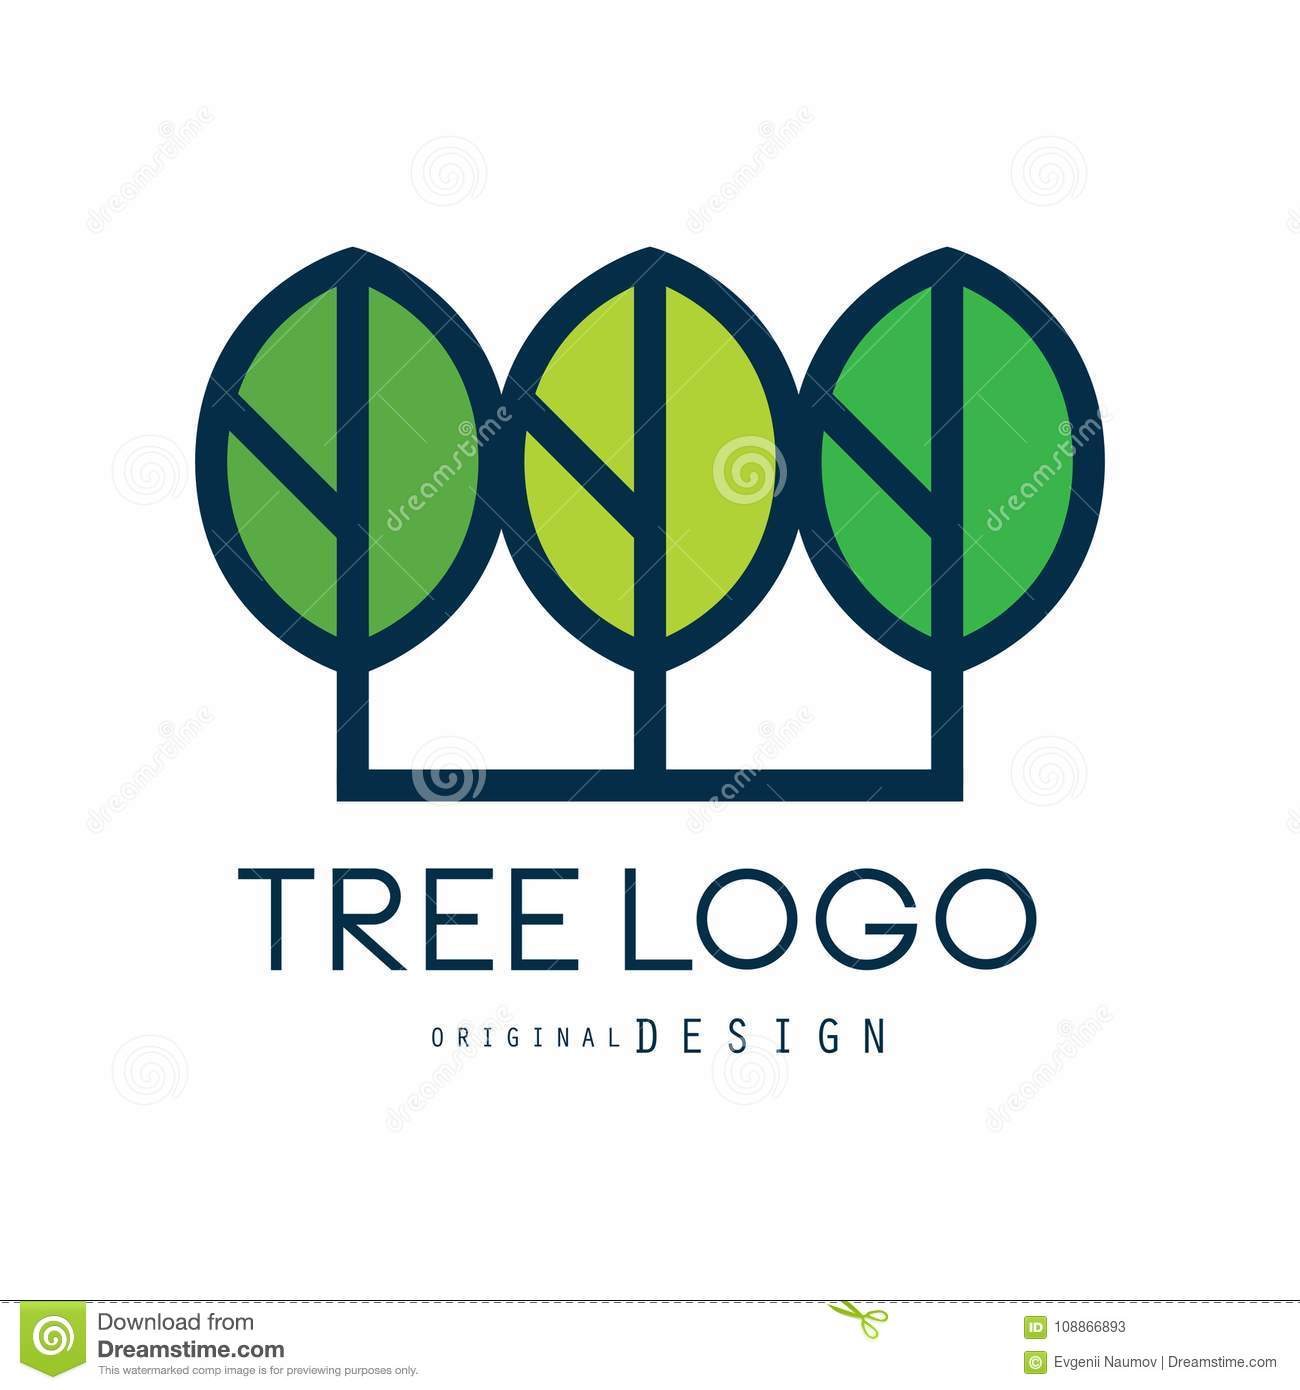 Tree logo original design, green eco badge, abstract organic element vector illustration